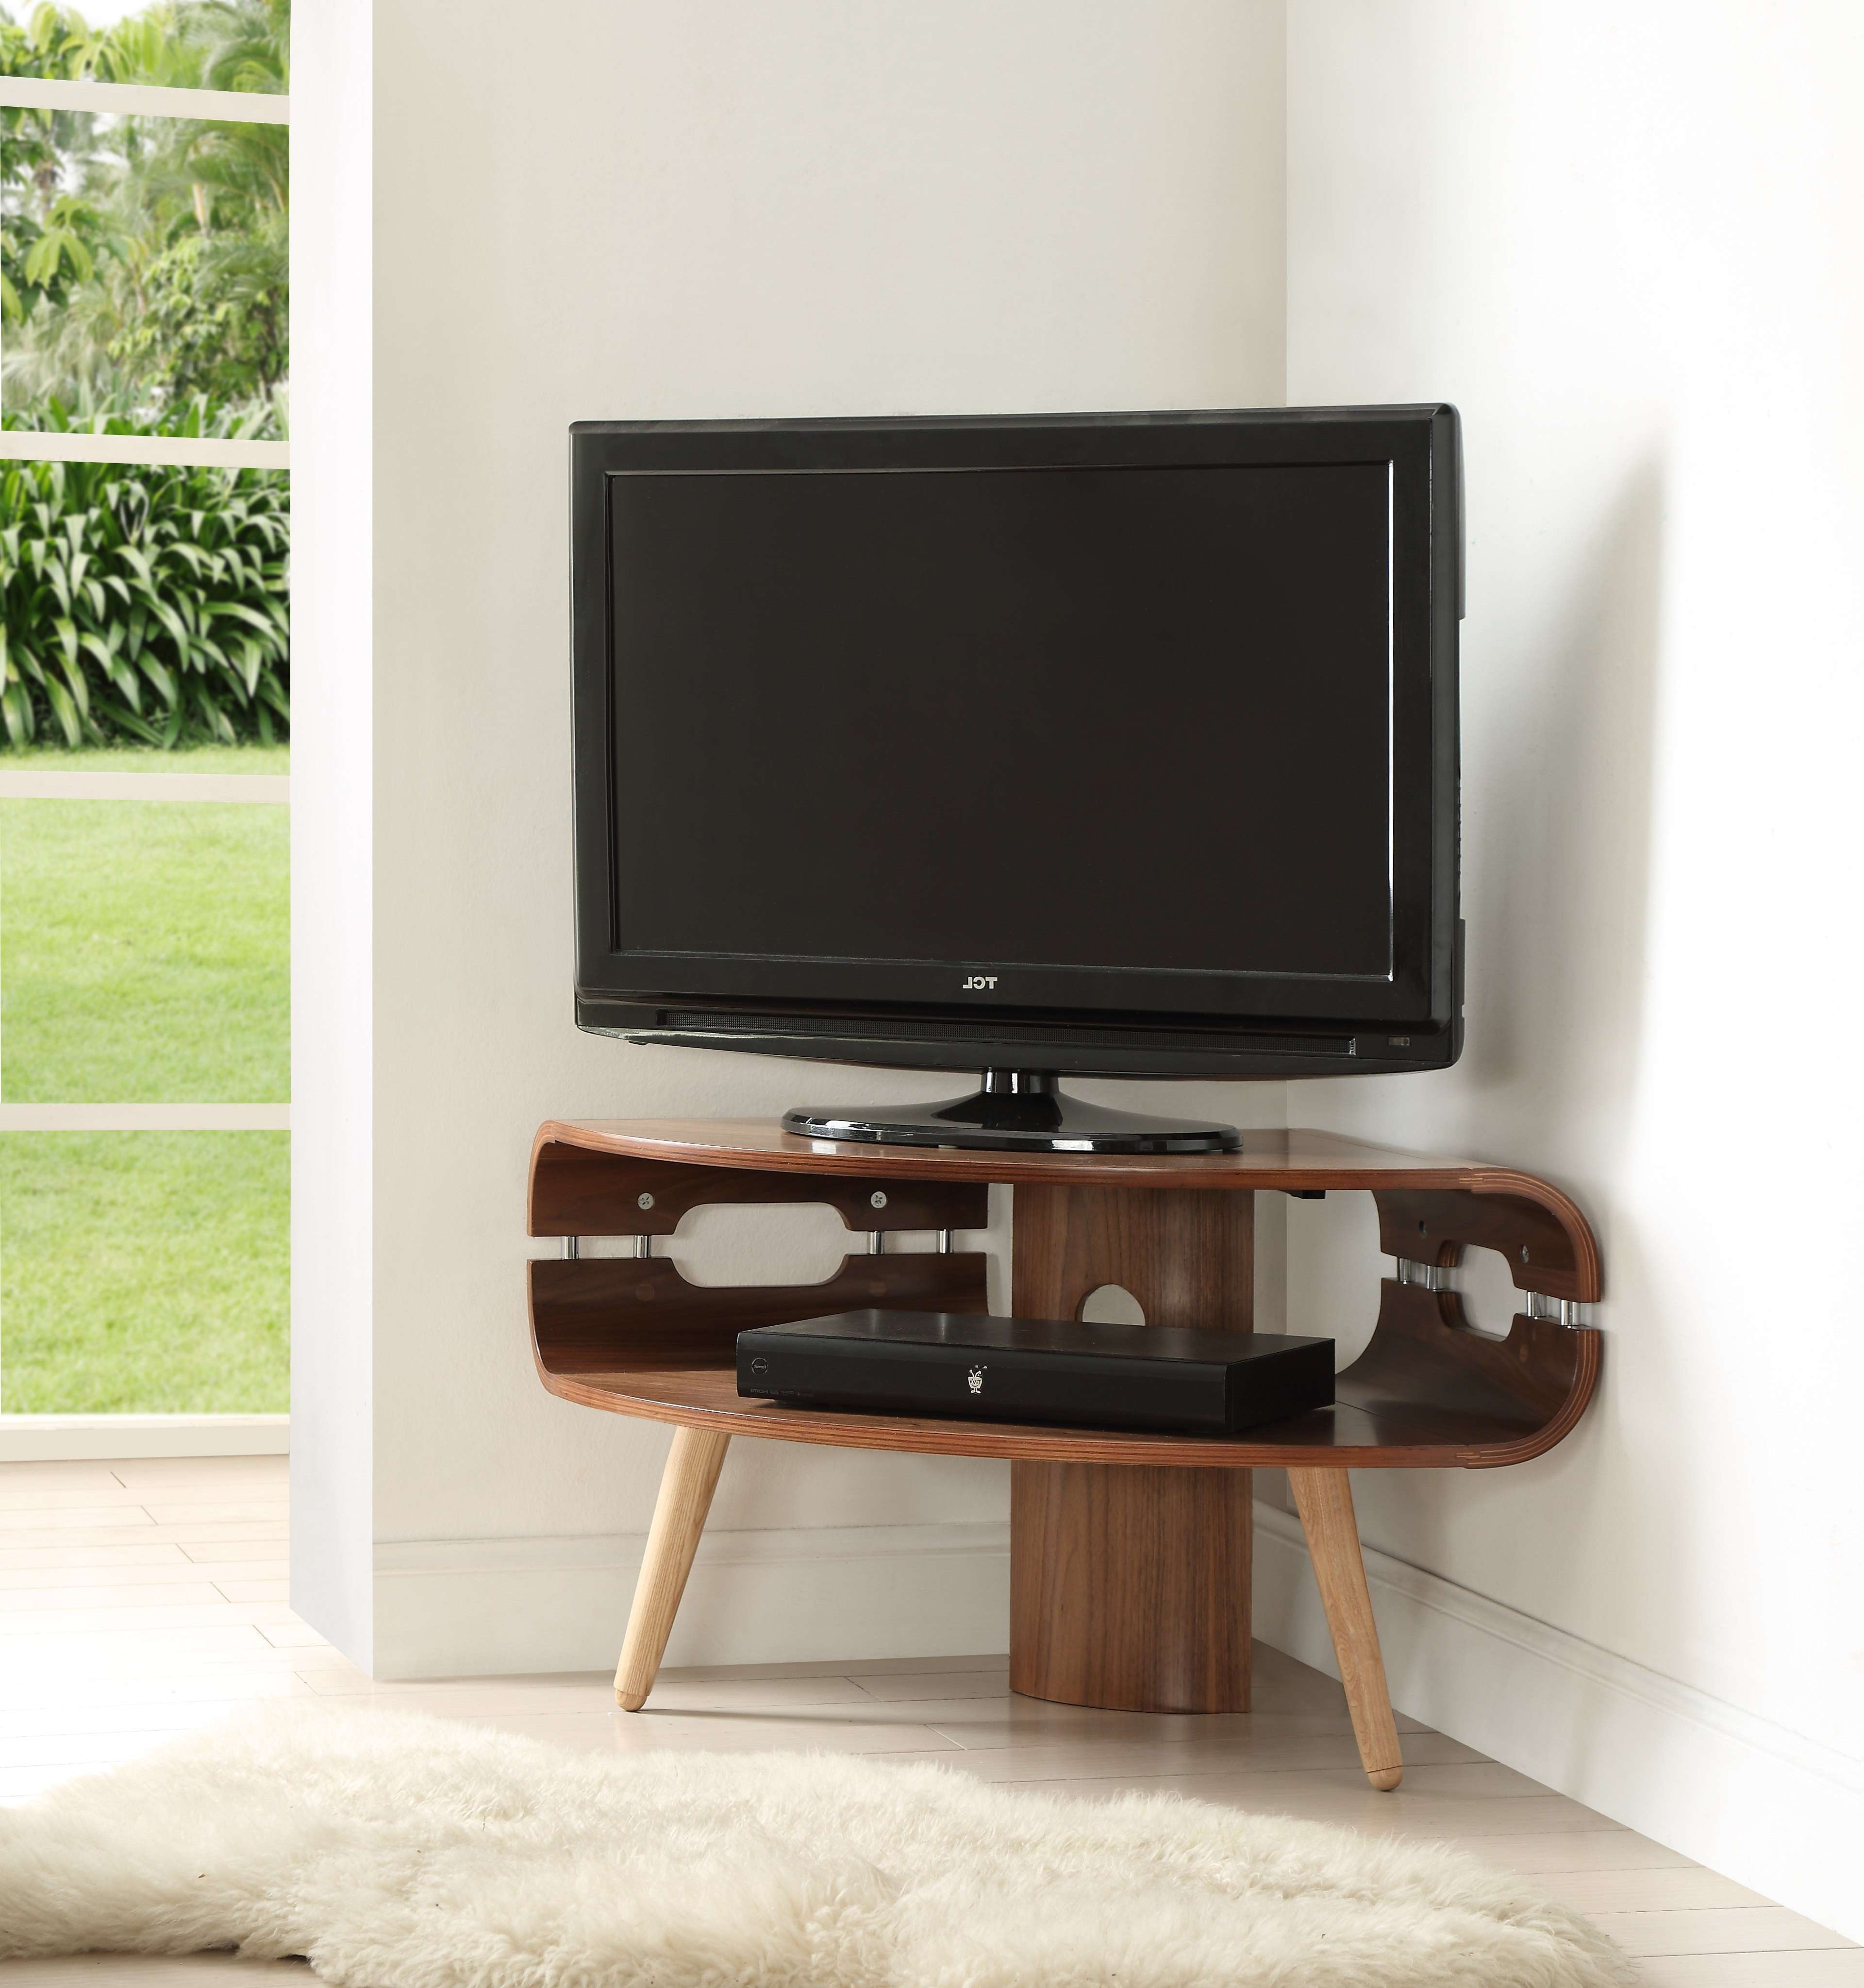 Tv : 100cm Tv Stands Engaging 100 Cm Long Tv Stands' Top 100 Cm For 100cm Tv Stands (View 5 of 15)